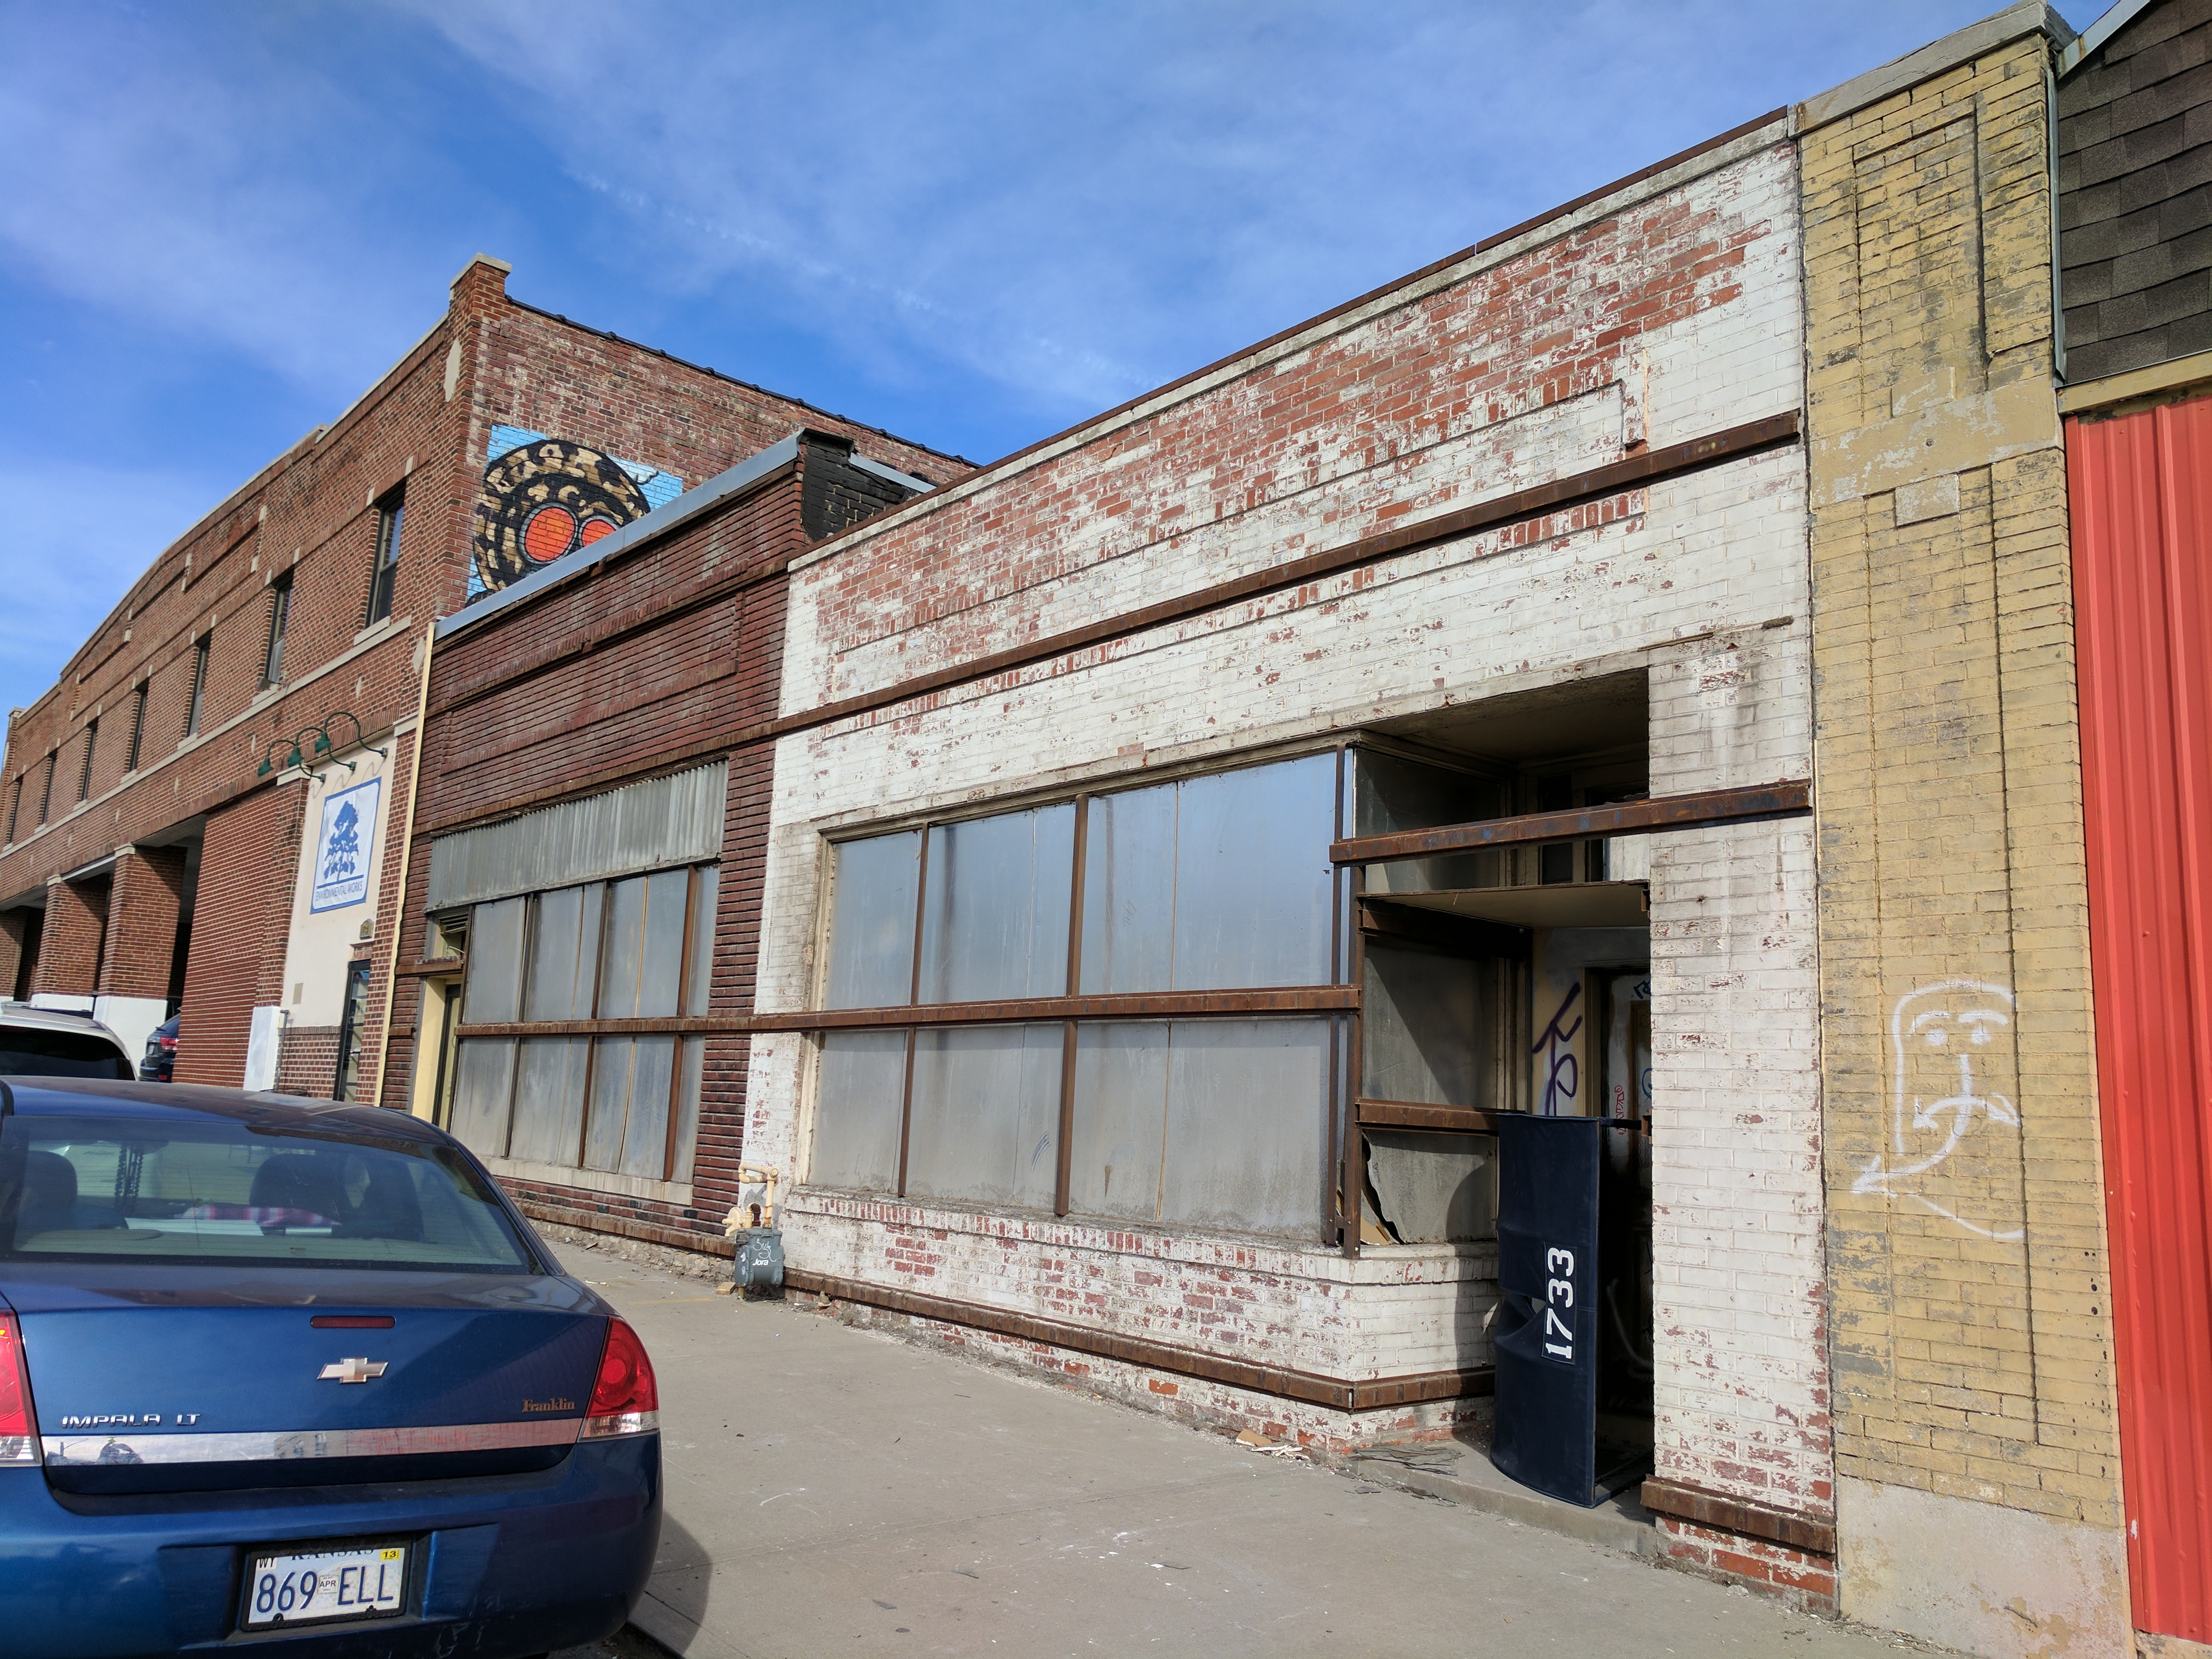 Restaurant, Brewery Space for Lease